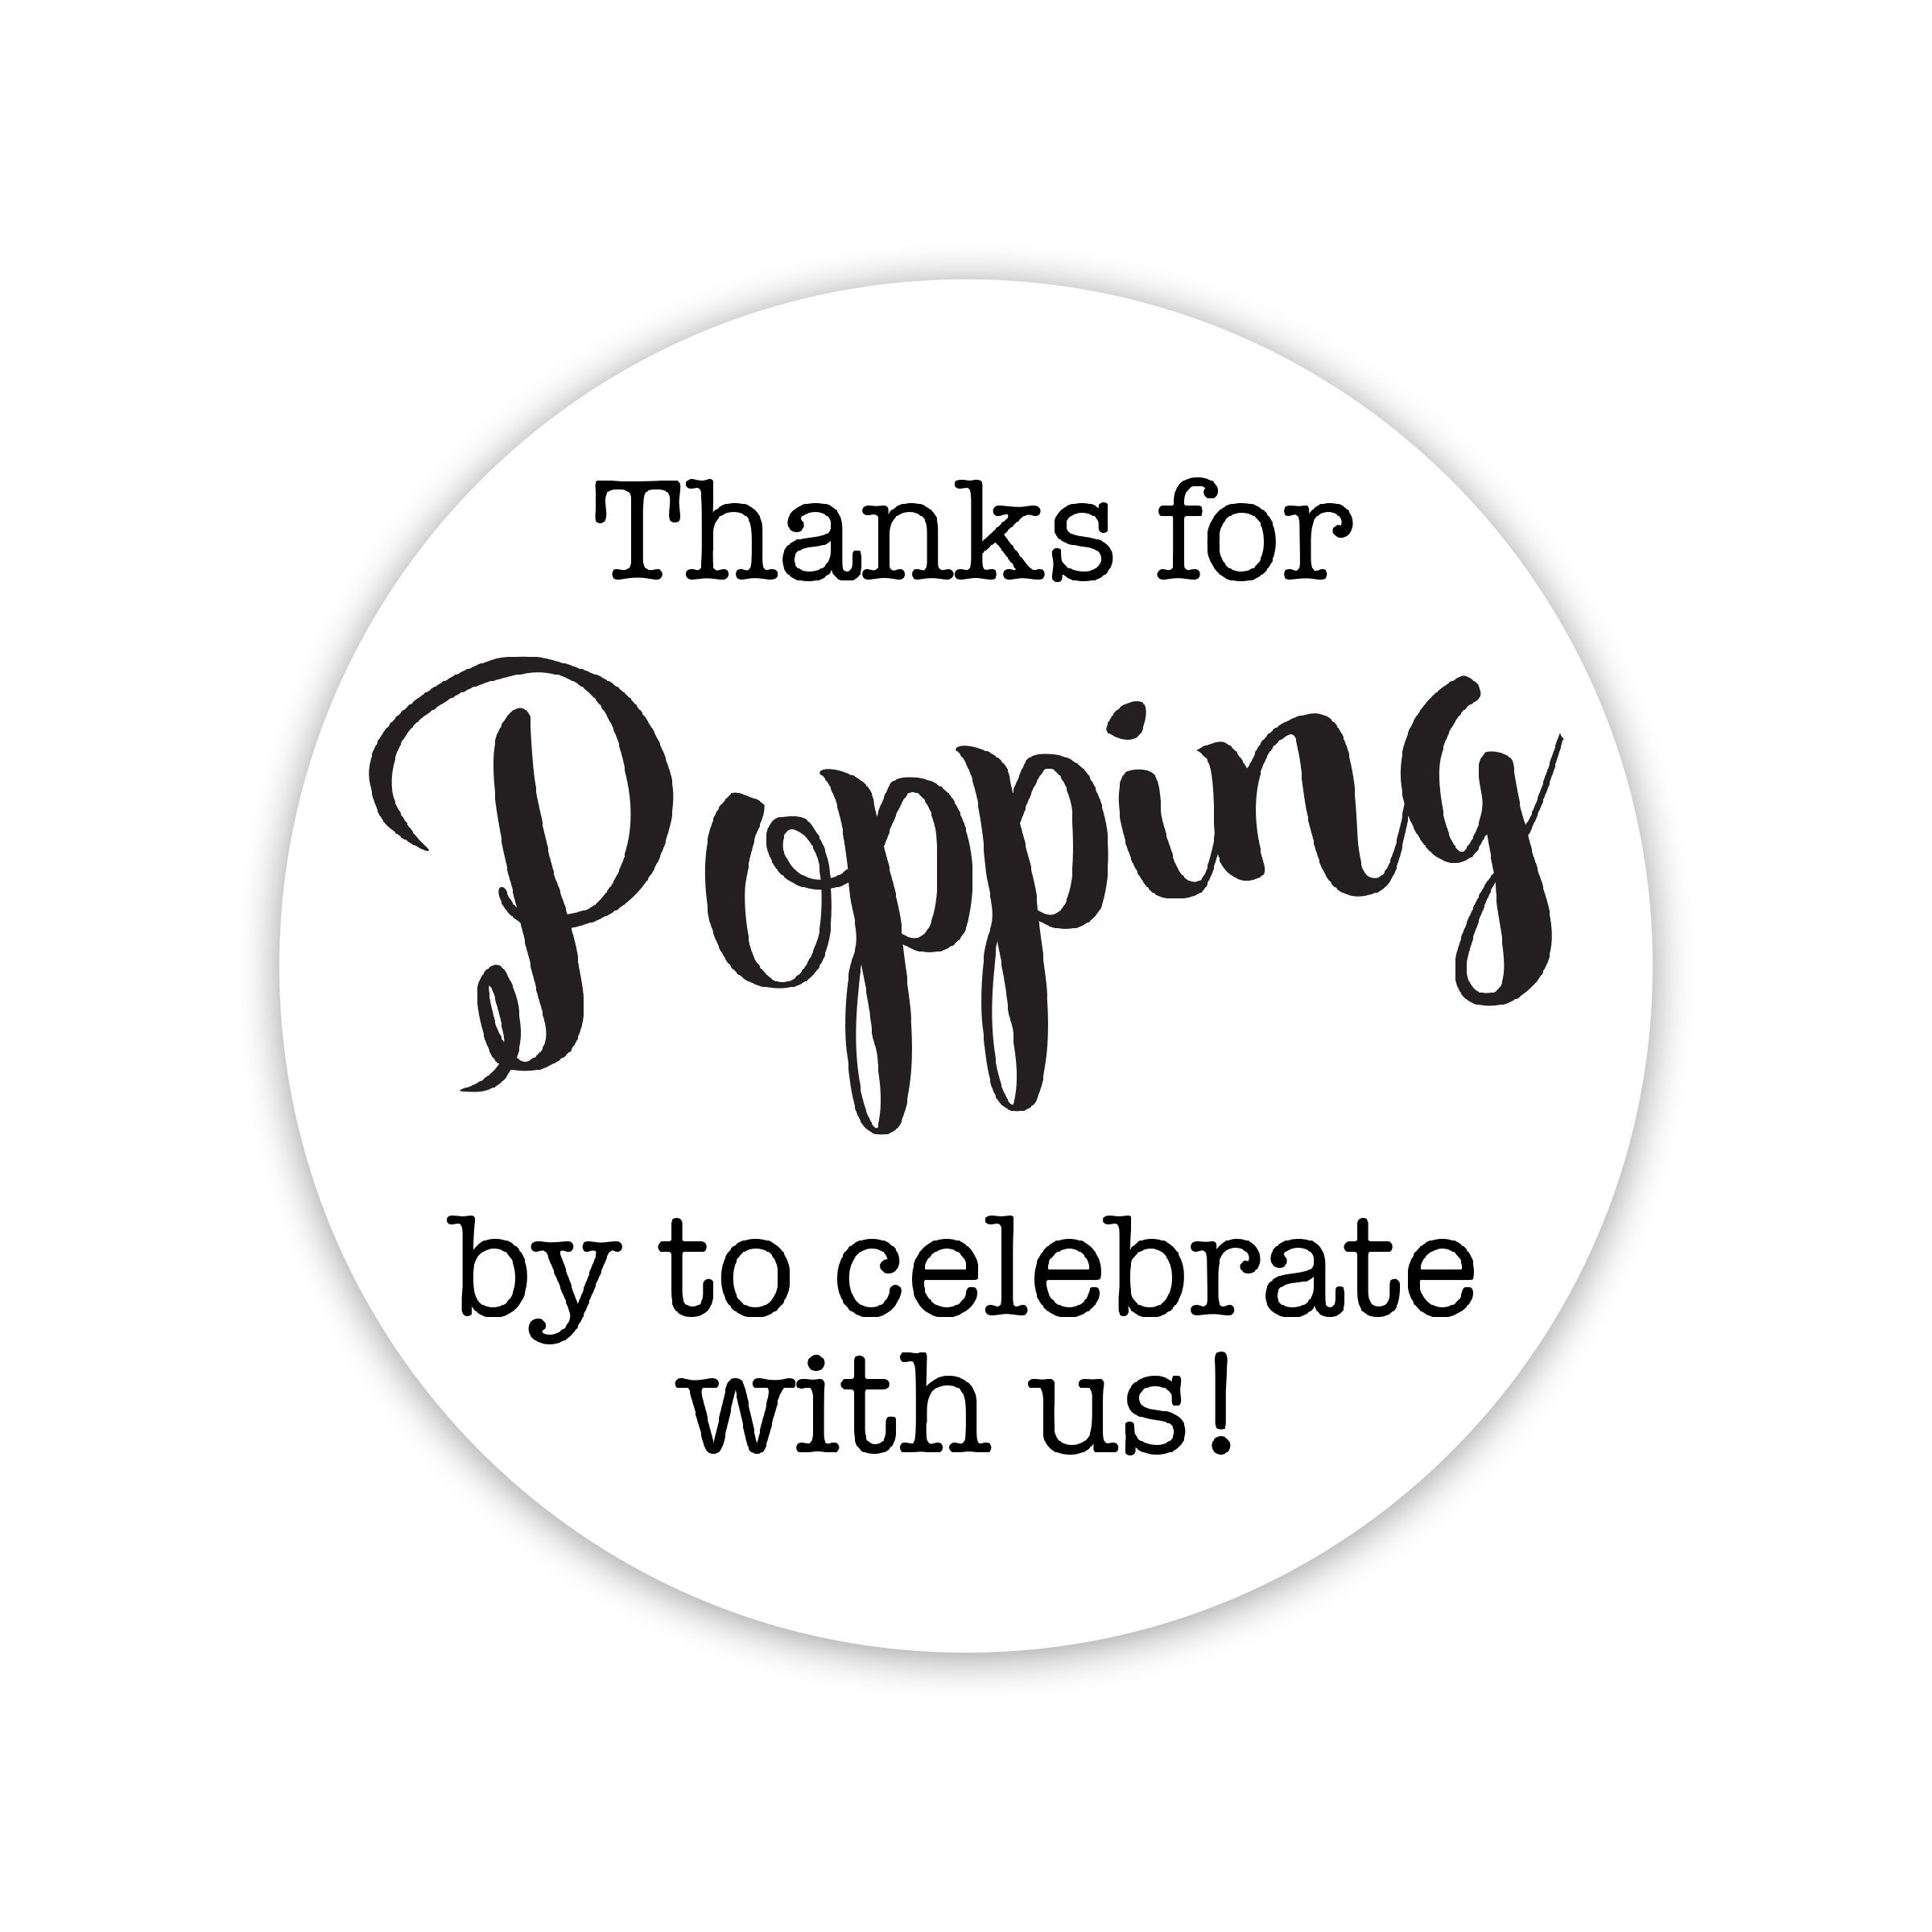 Thanks for Popping By Stickers, Thanks for Celebrating with Us Stickers (#381-C-BK)